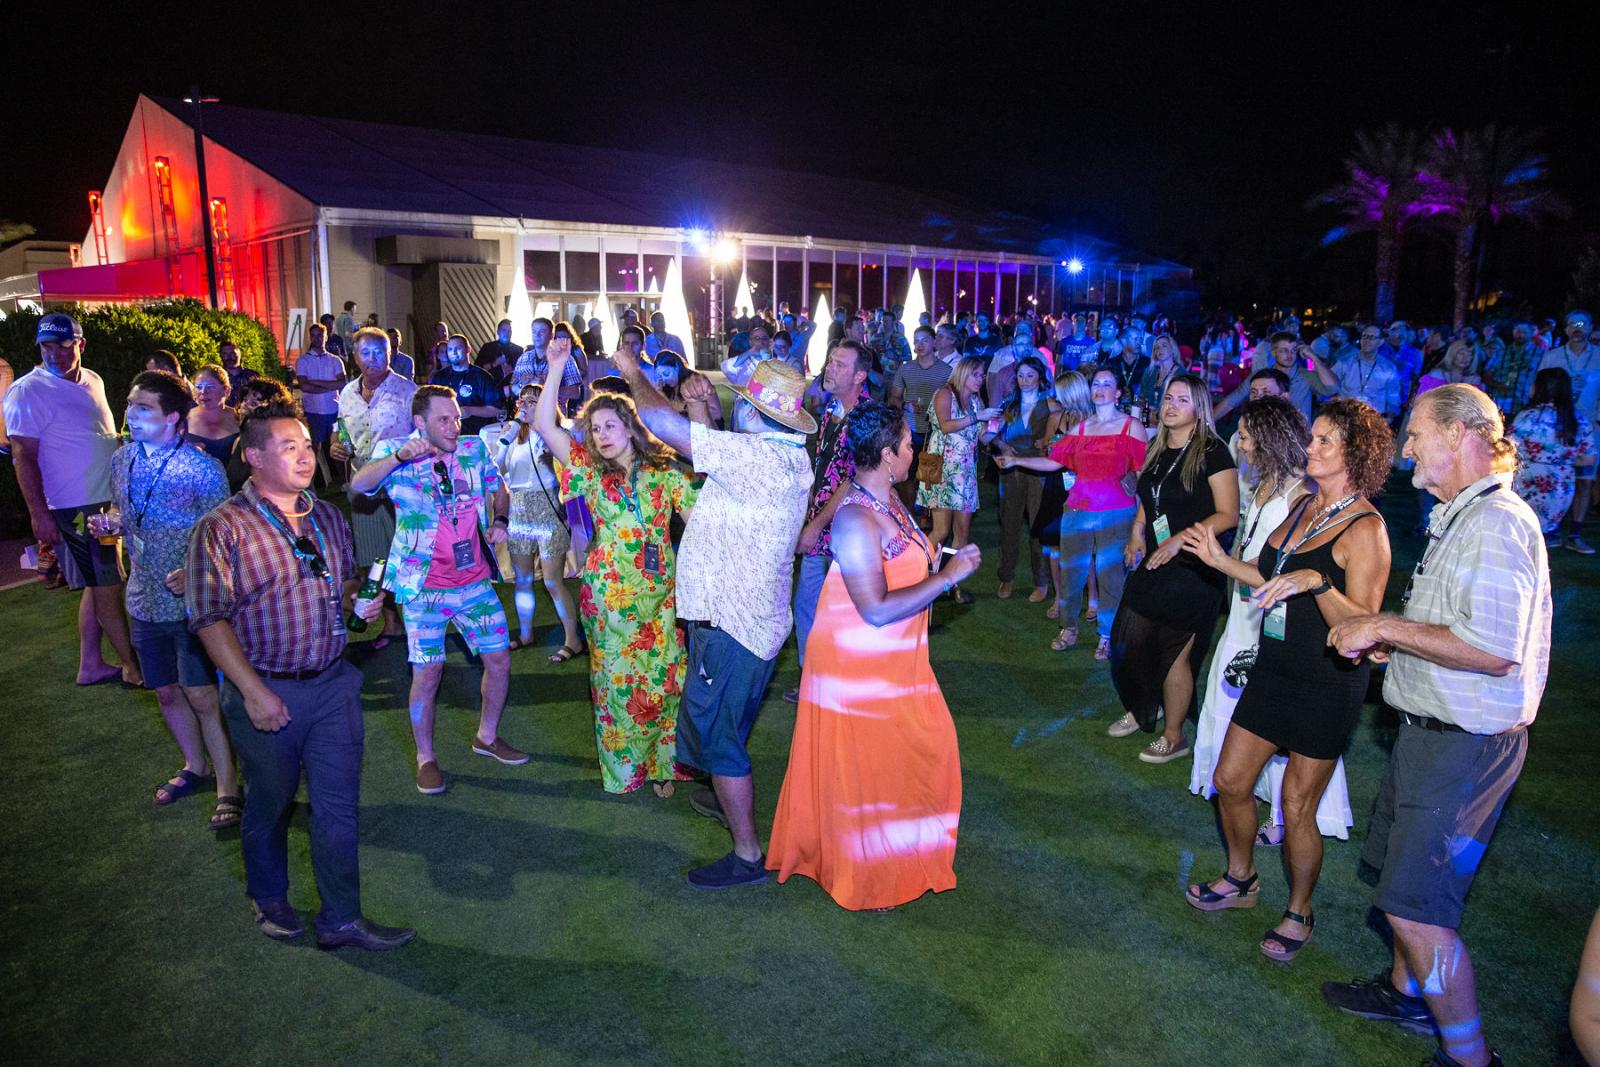 Users dance the night away during the Desert Glow: Party in the Palms event.